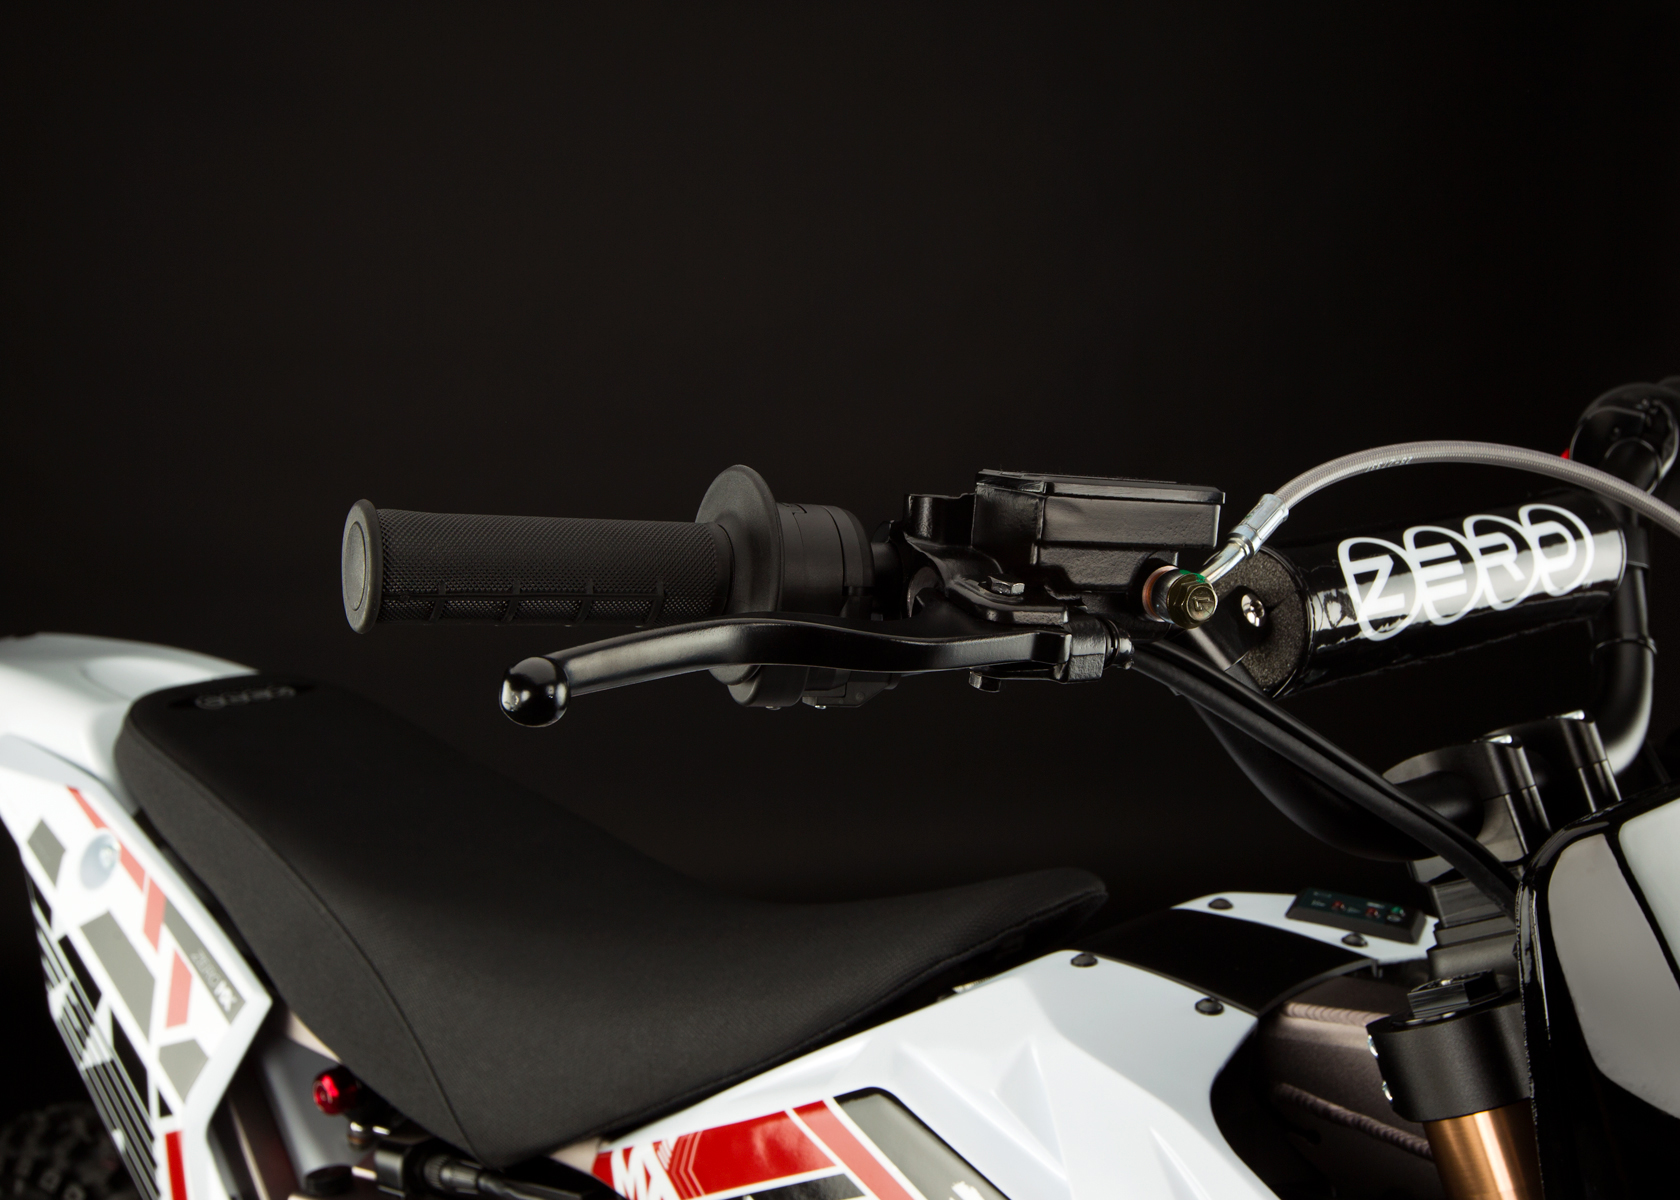 2012 Zero MX Electric Motorcycle: Front Hand Brake